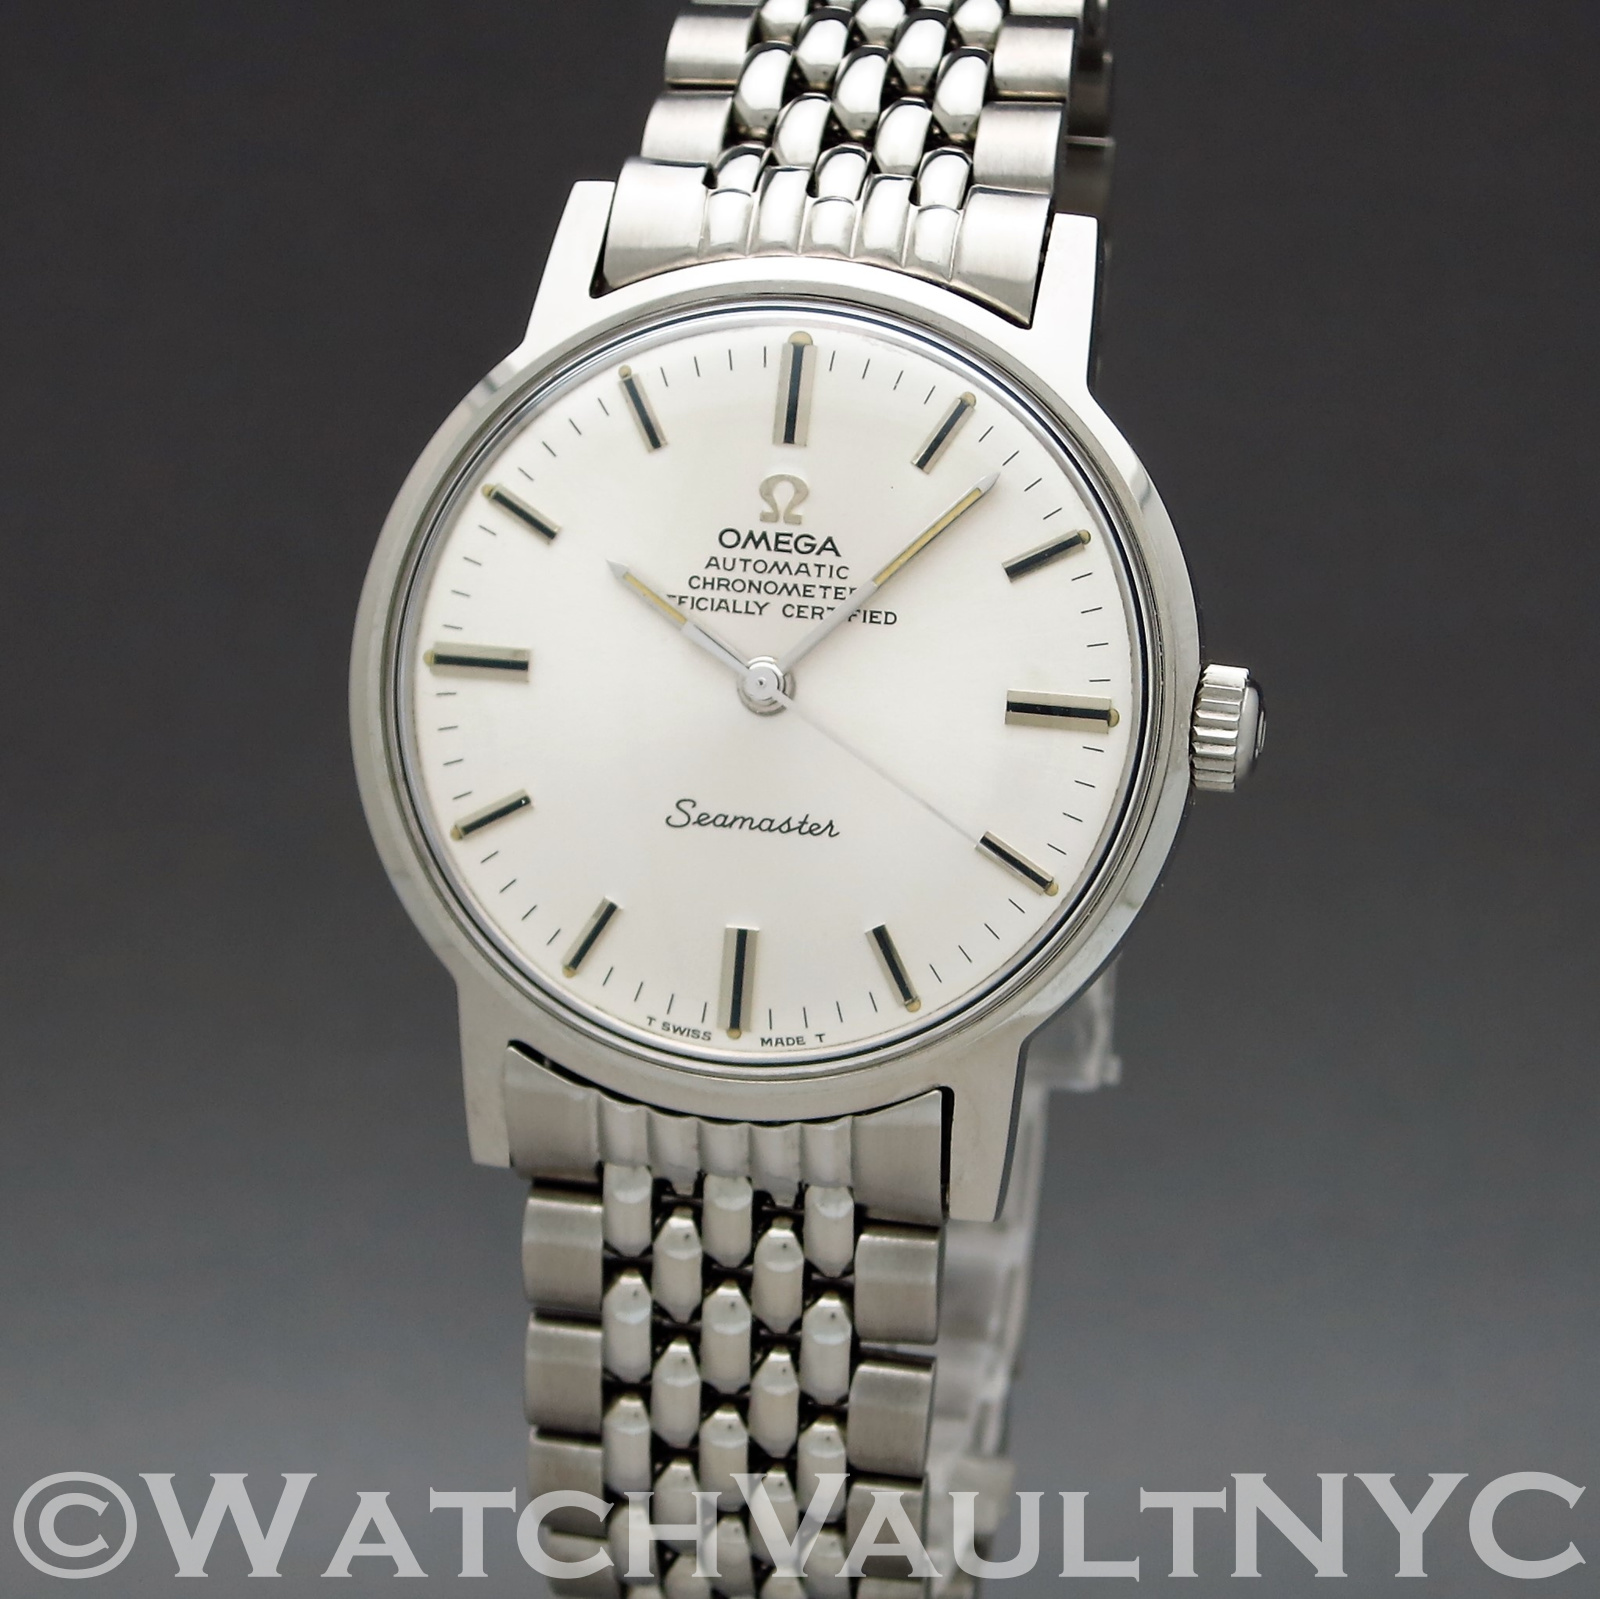 Omega Seamaster Chronometer Md166 070 1969 Vintage 34mm Auto